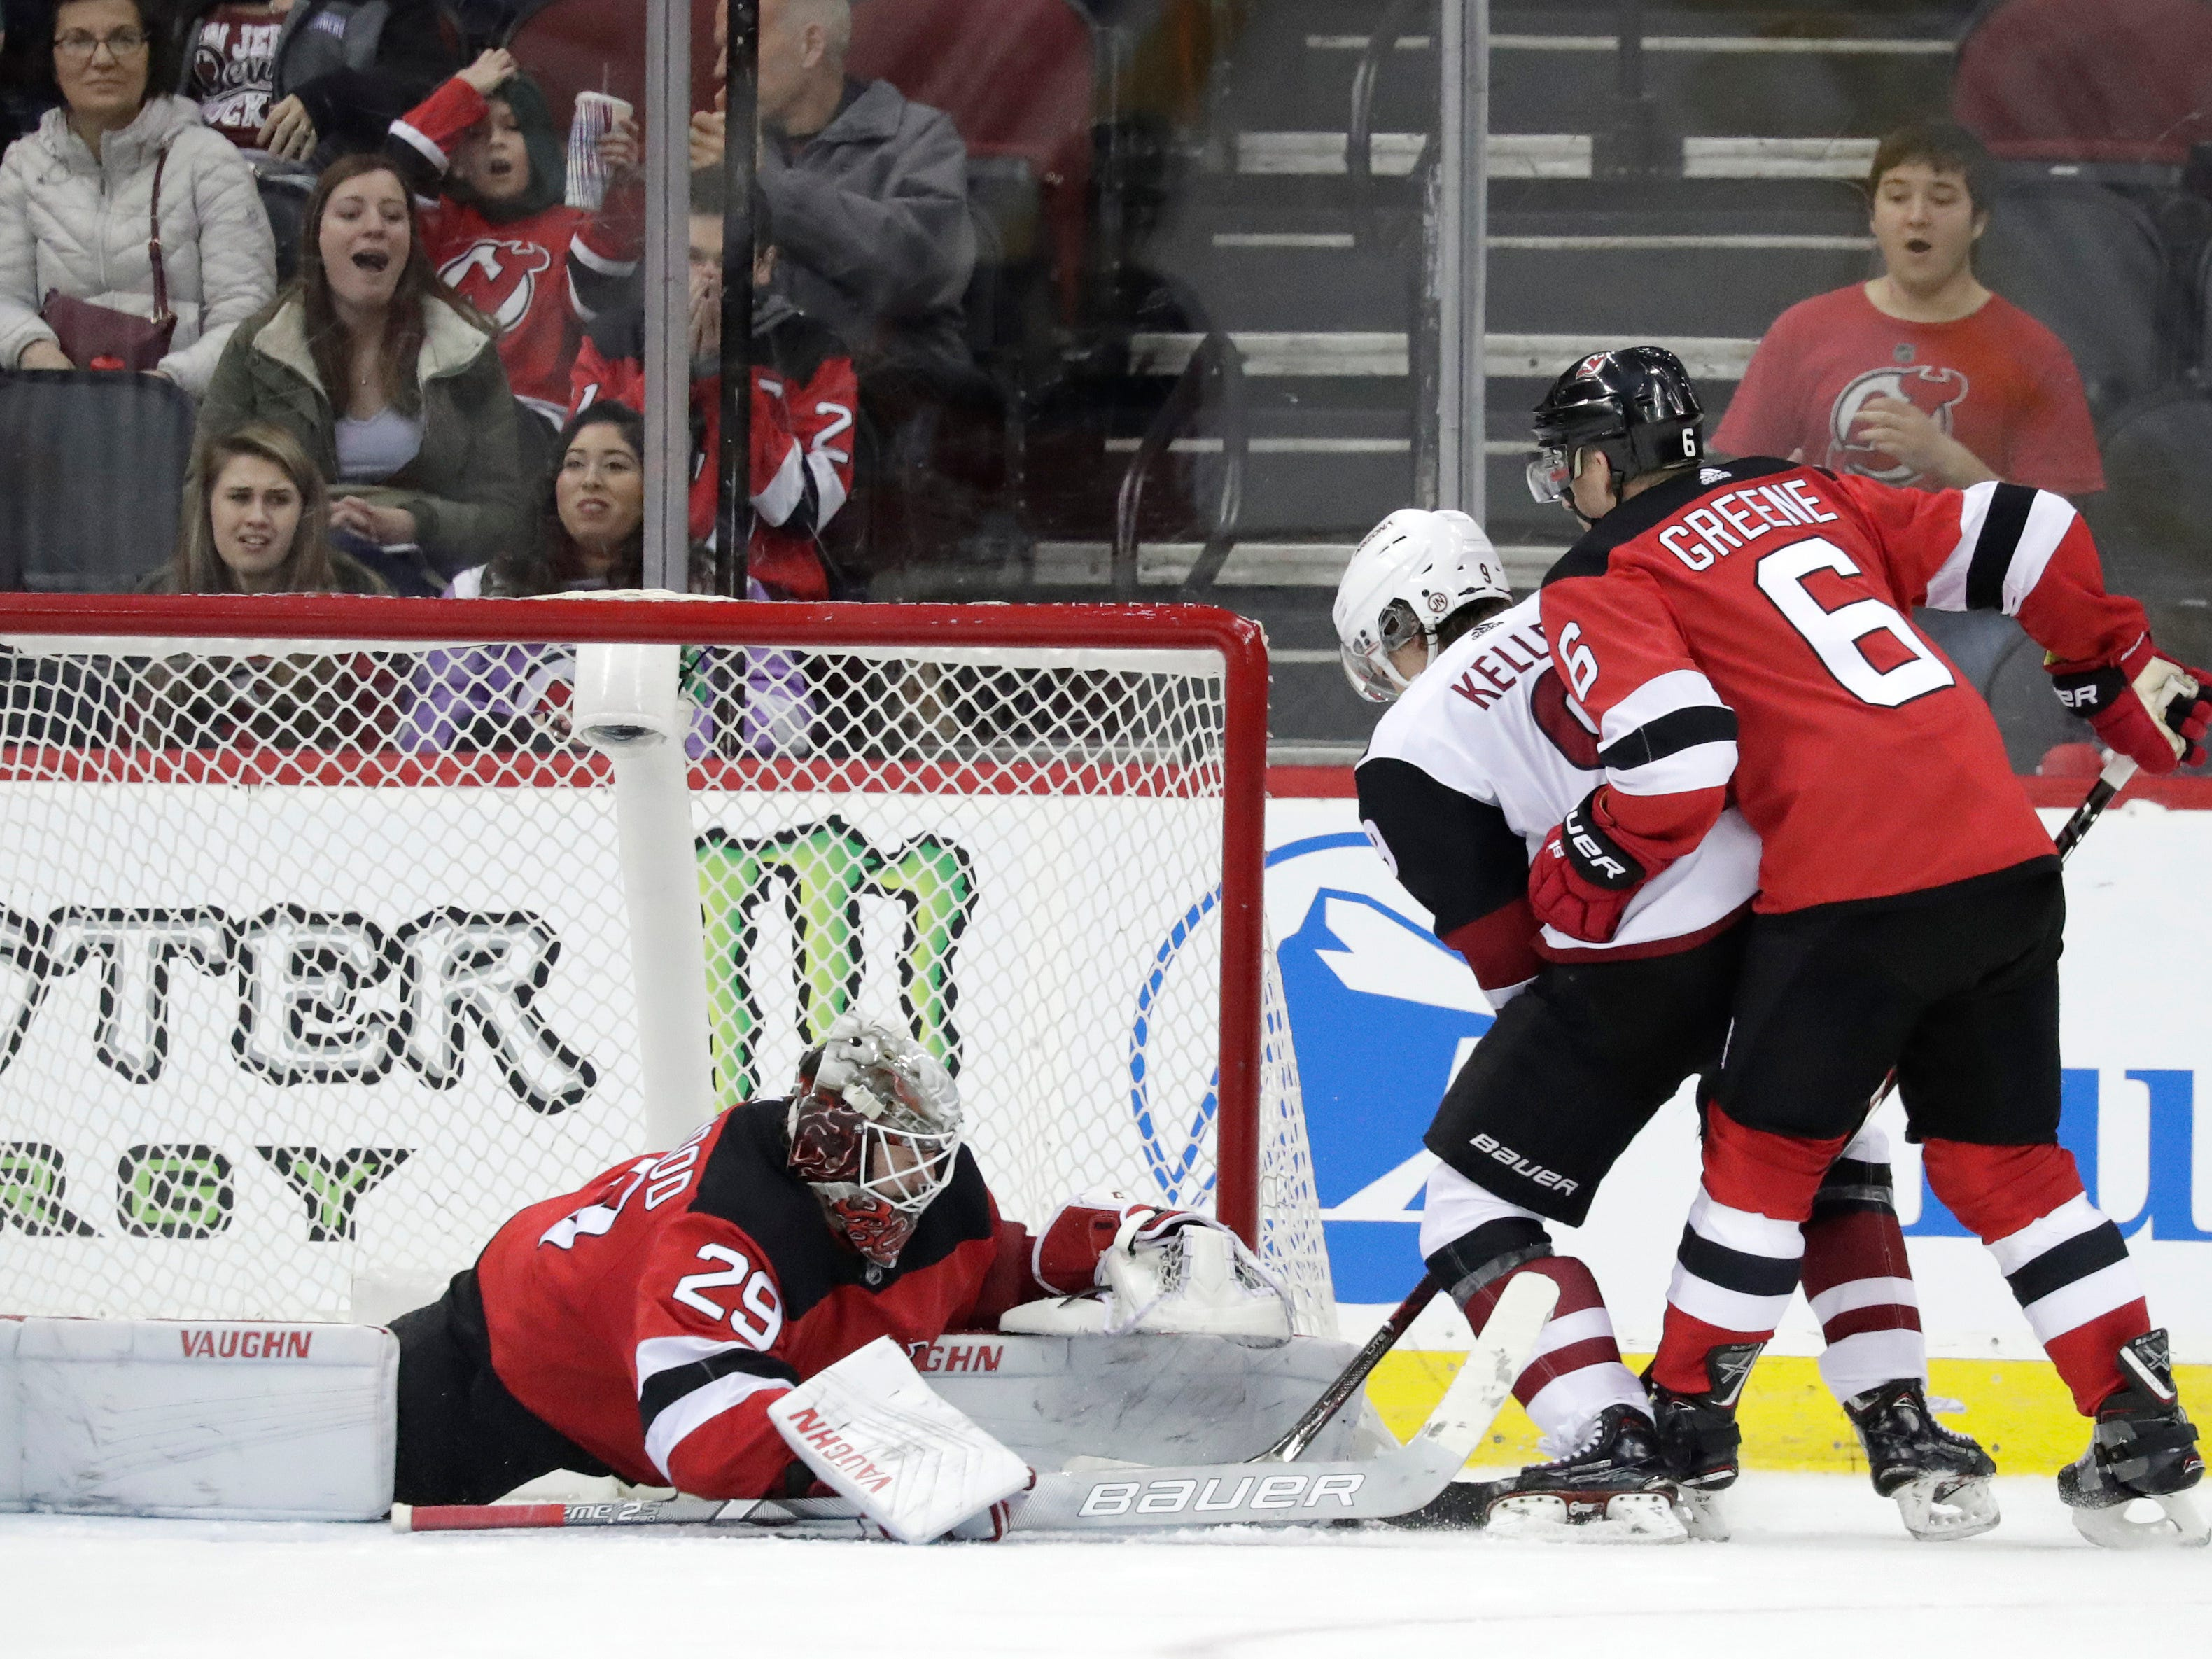 New Jersey Devils goaltender MacKenzie Blackwood (29) makes a save against Arizona Coyotes center Clayton Keller, center, during overtime of an NHL hockey game, Saturday, March 23, 2019, in Newark, N.J. Devils' Andy Greene helps defend on the play. The Devils on 2-1 in a shootout.